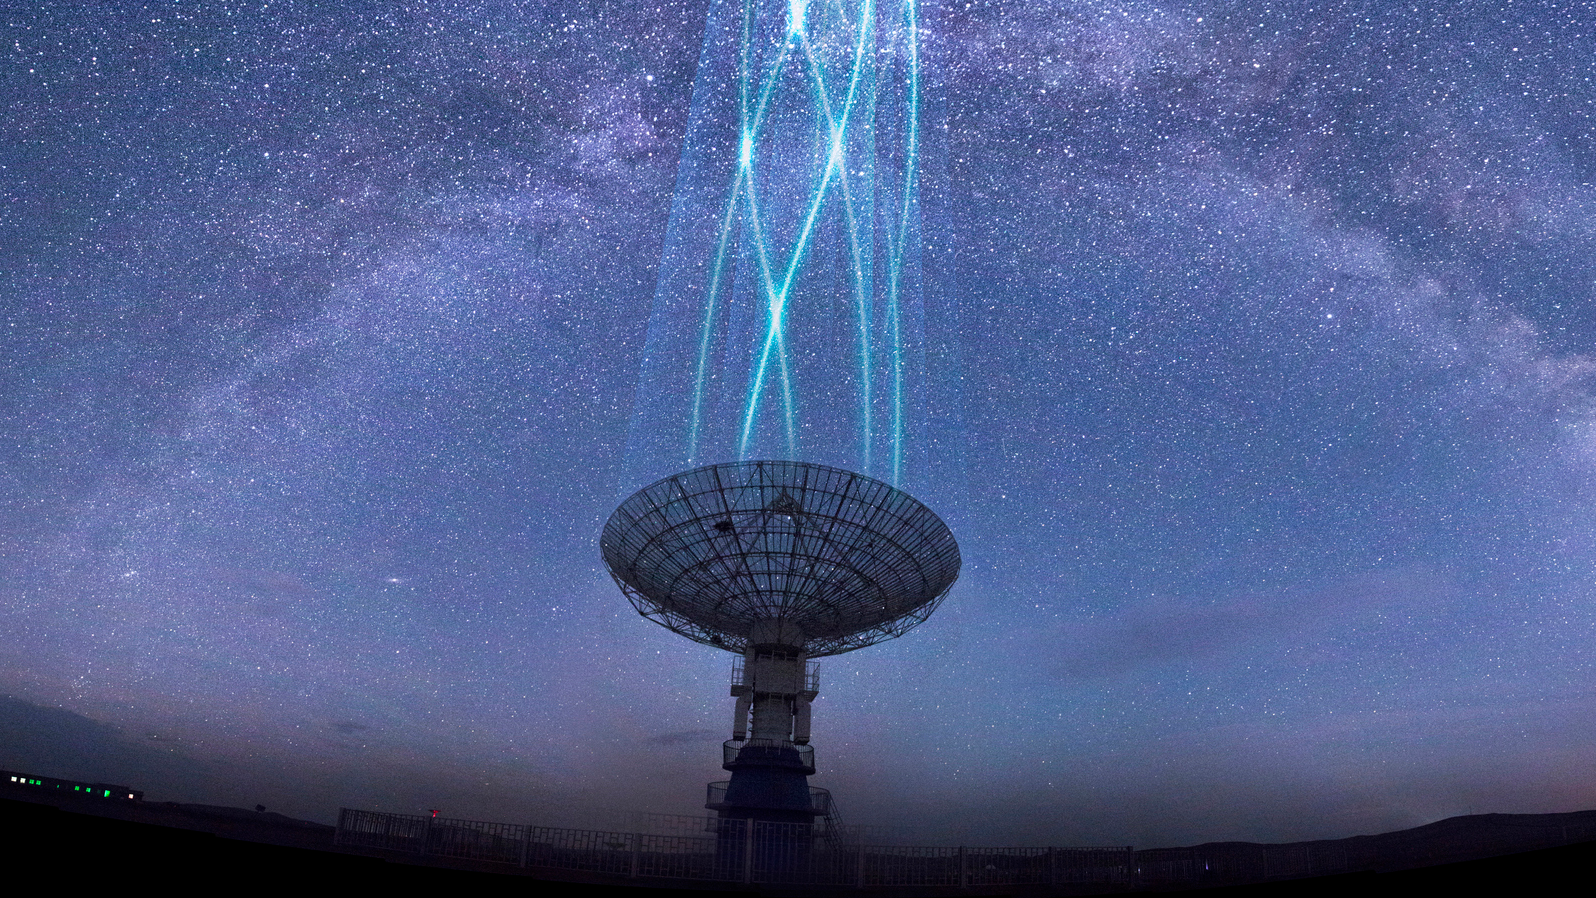 Satelllite dish aimed at a starry sky